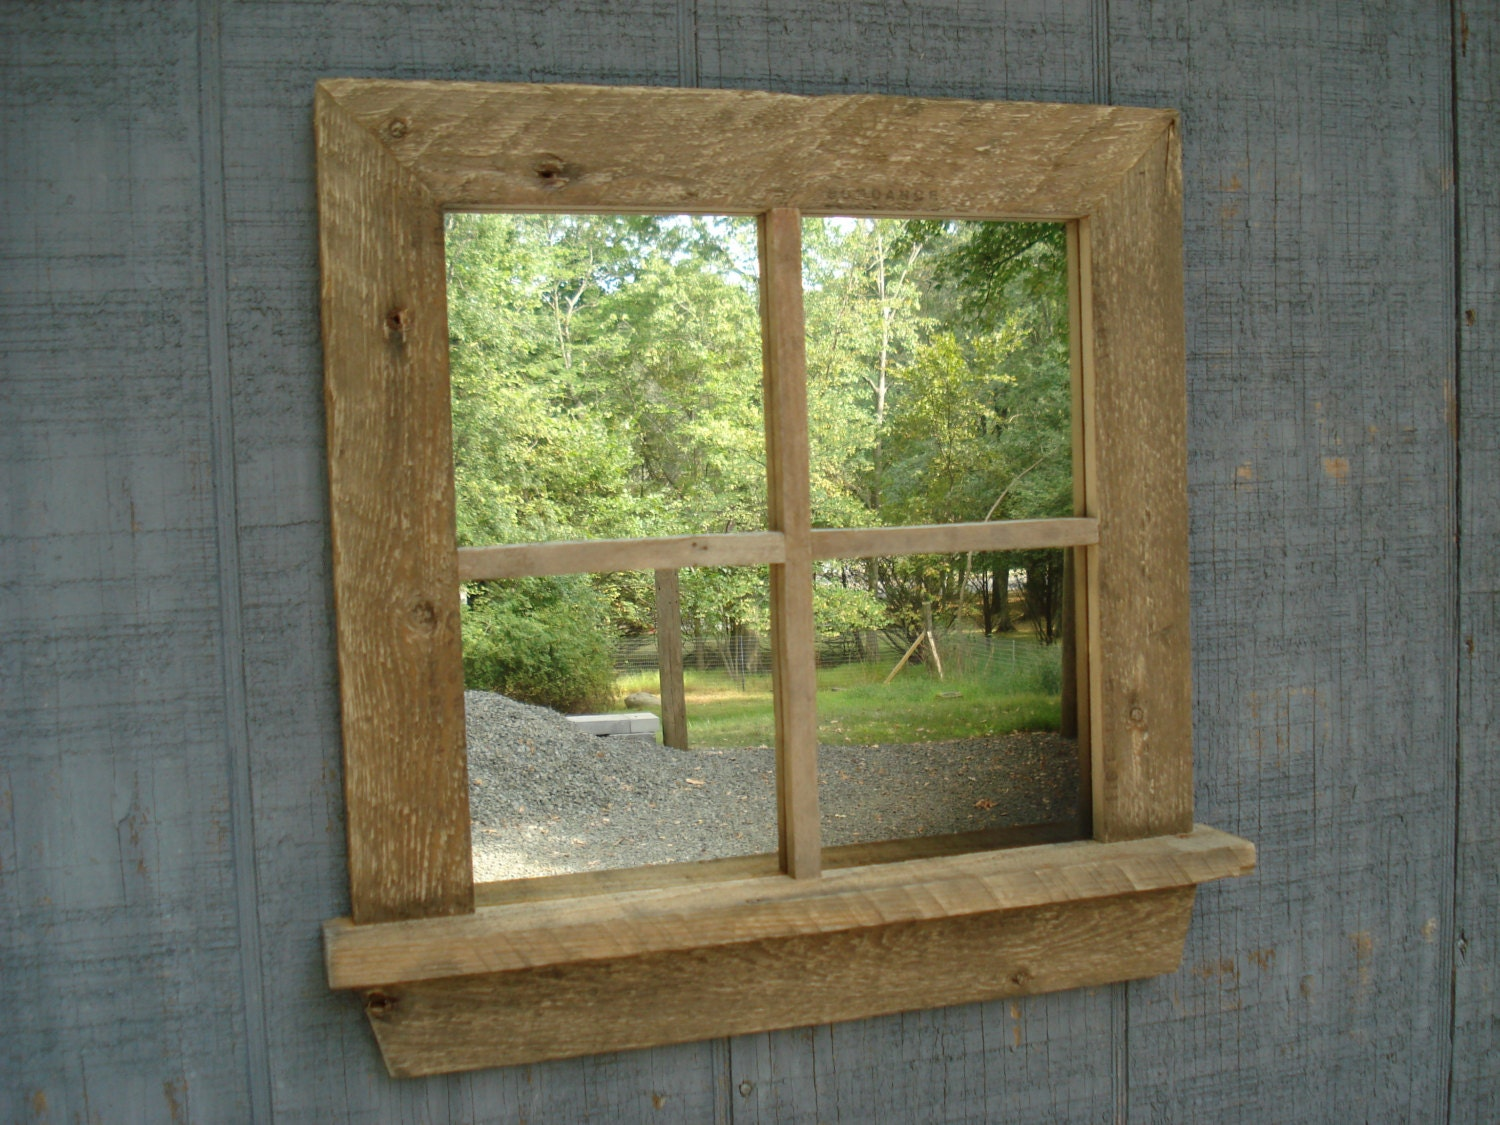 Rustic Window Mirror With Sill Square